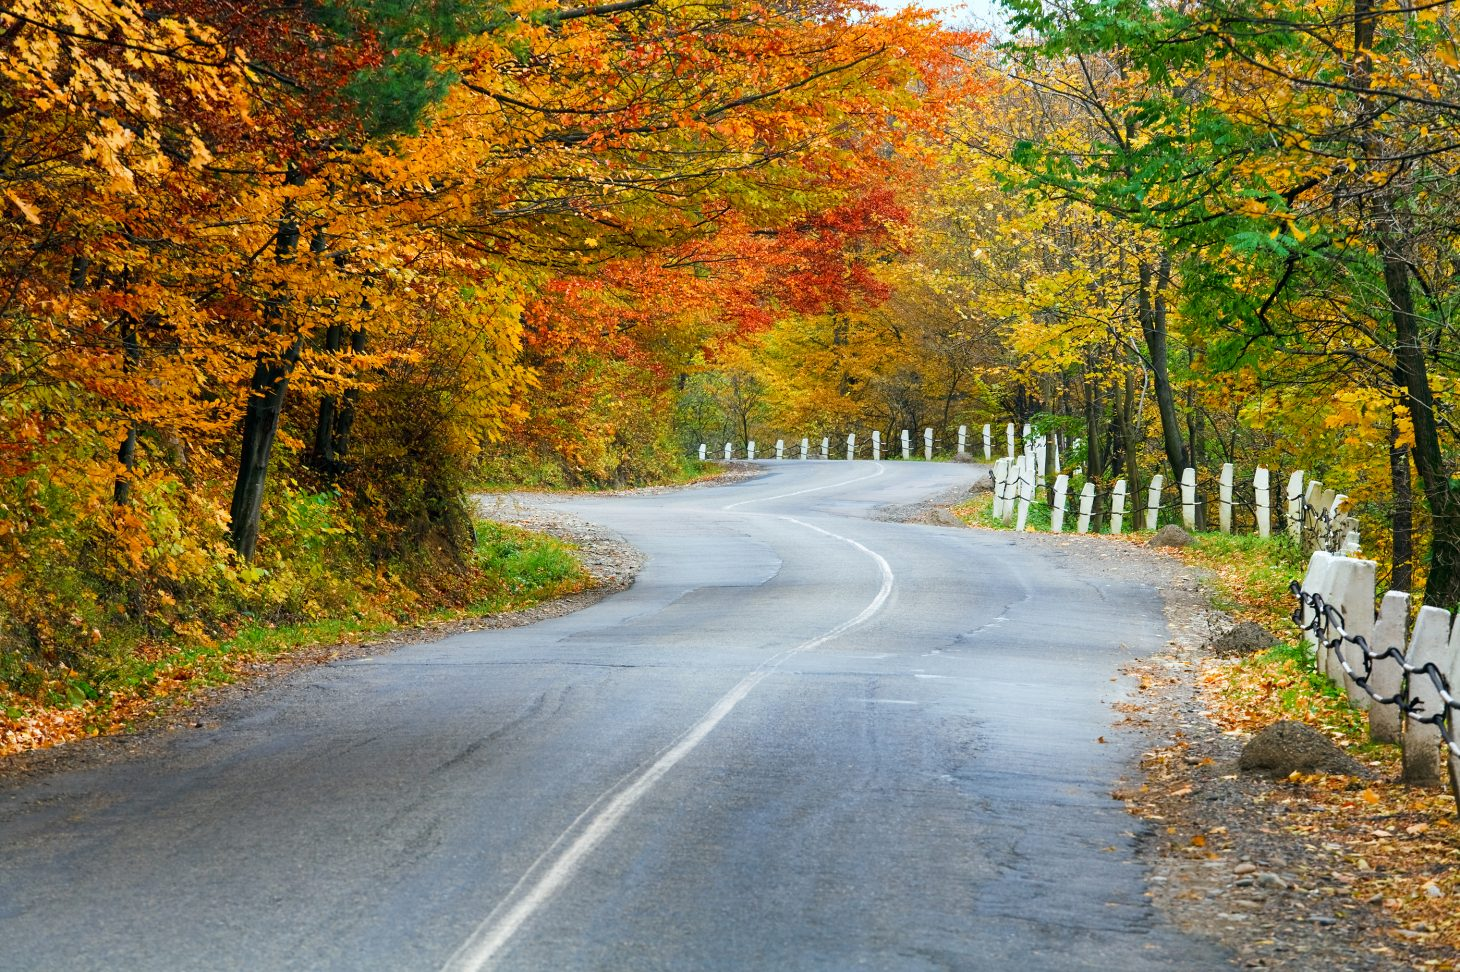 Fall foliage lining the winding road